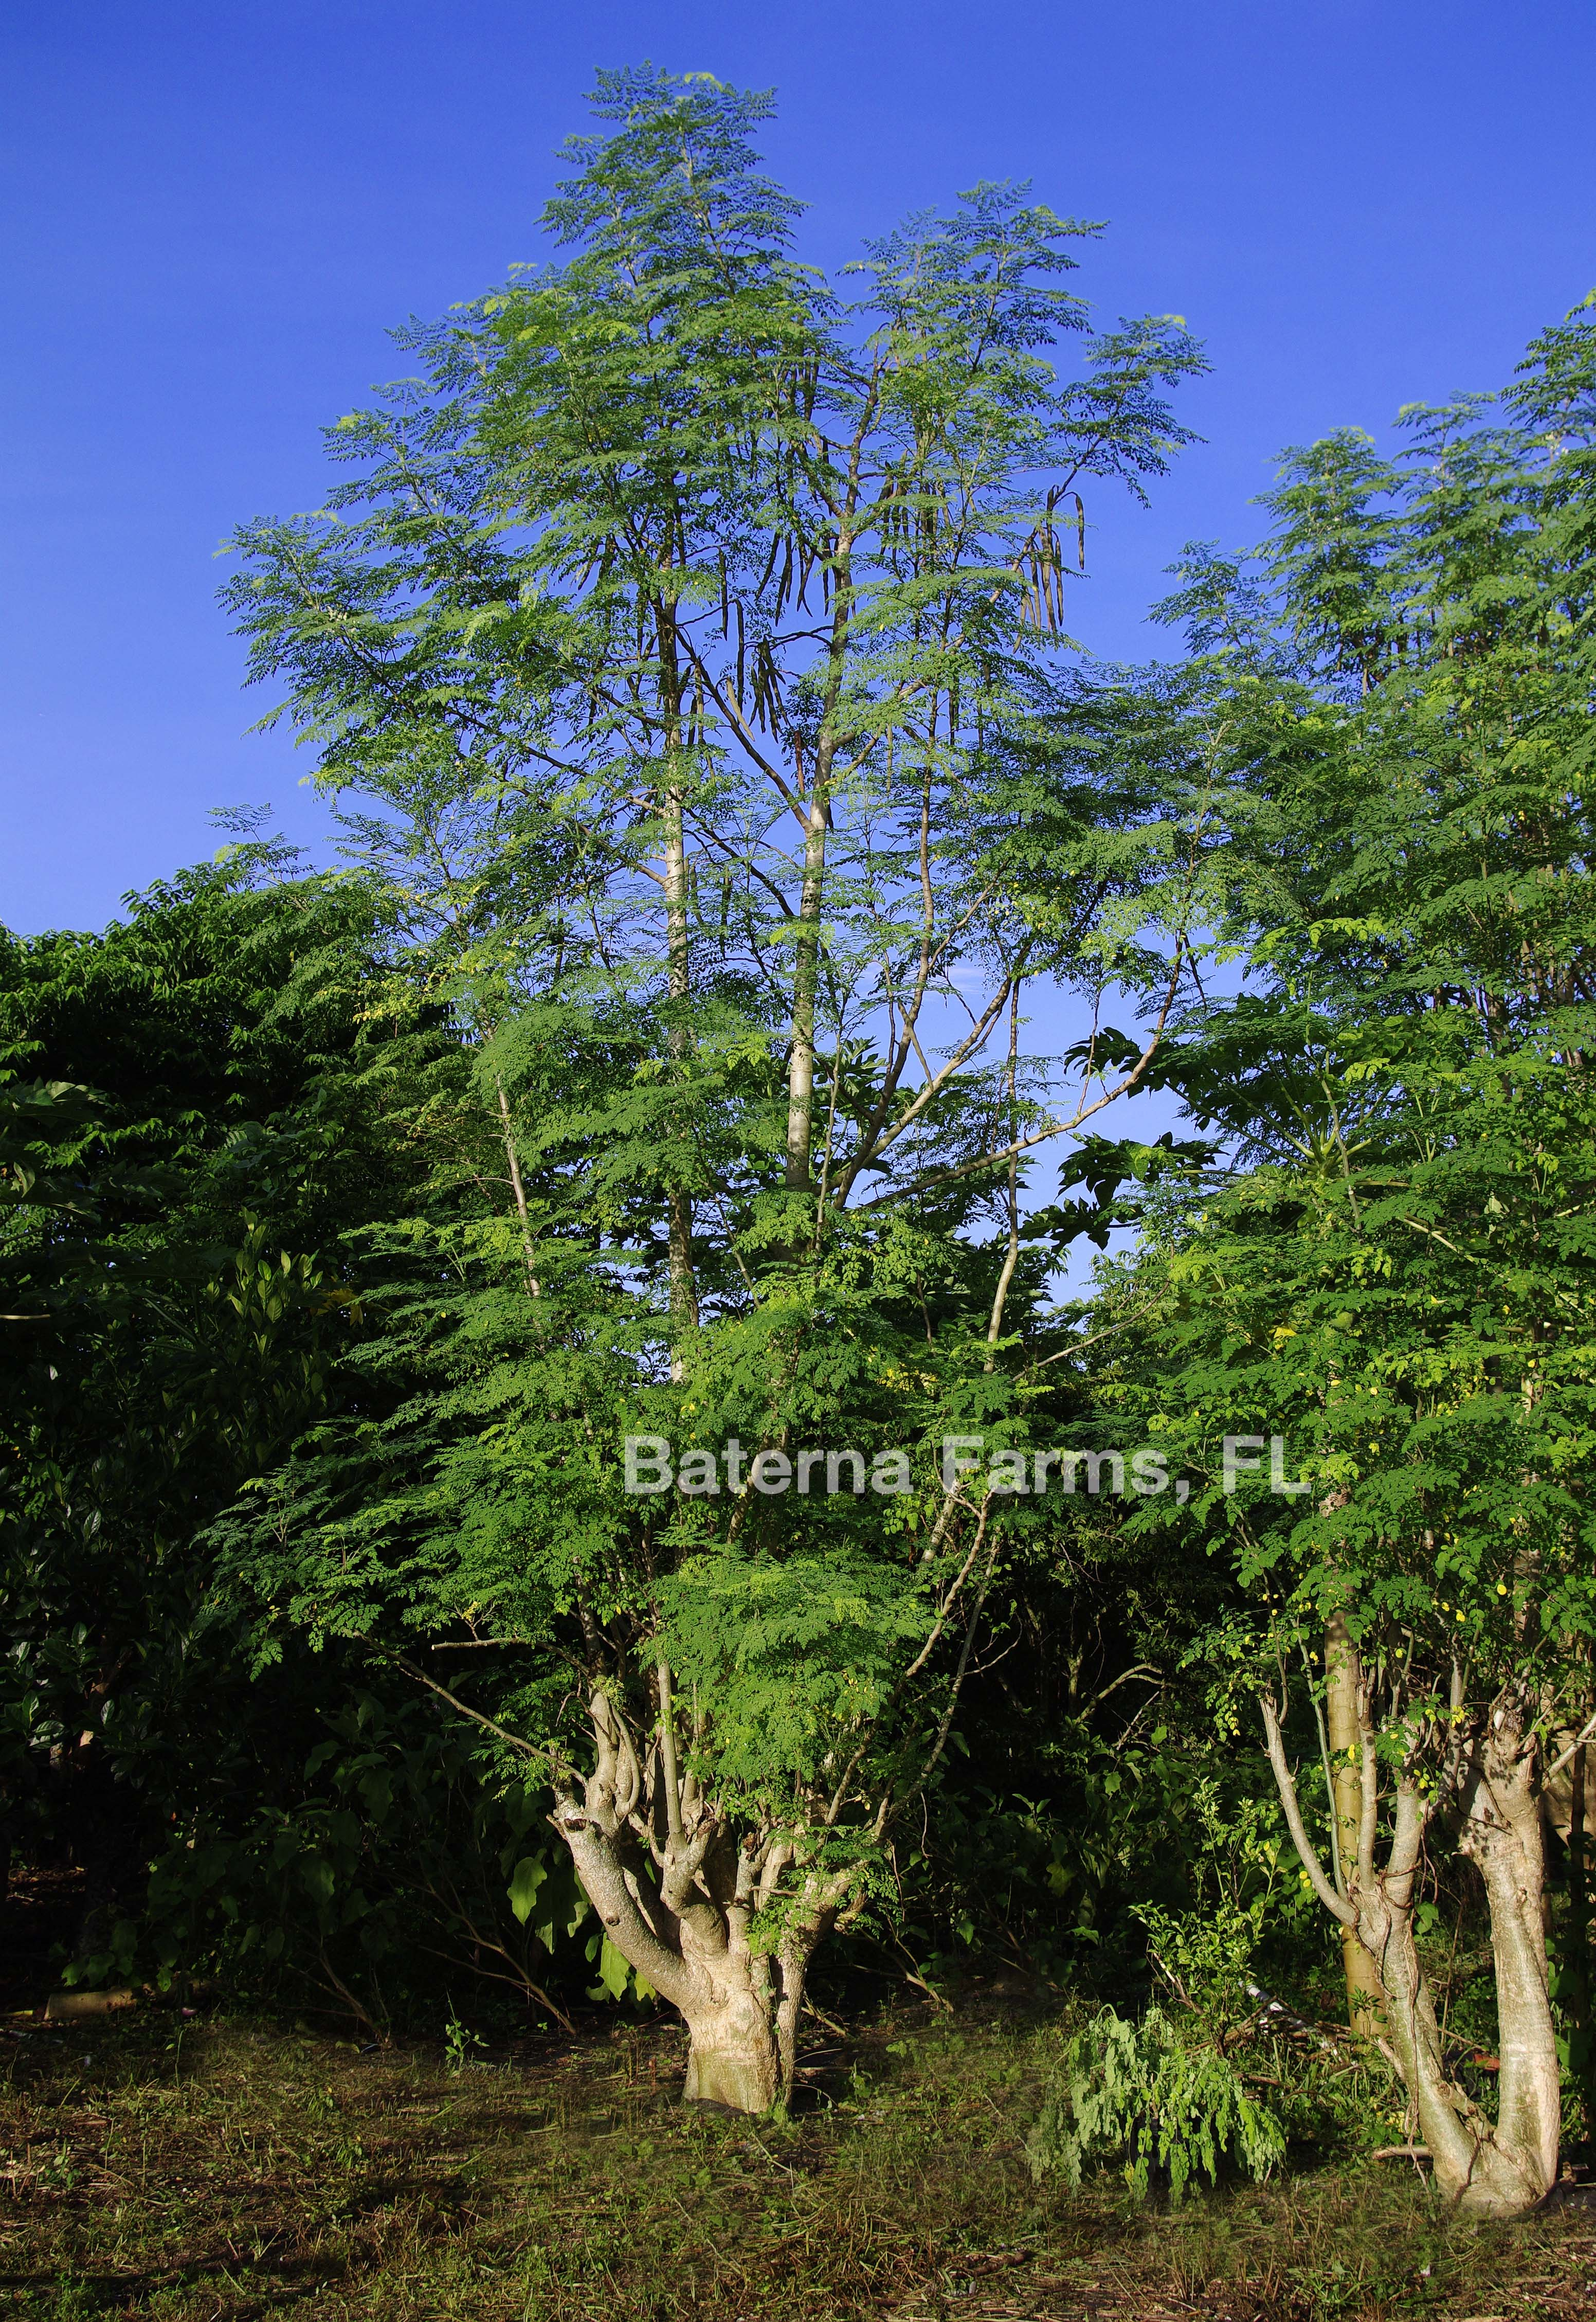 Baterna Farms Grows Moringa Trees That Are Good for